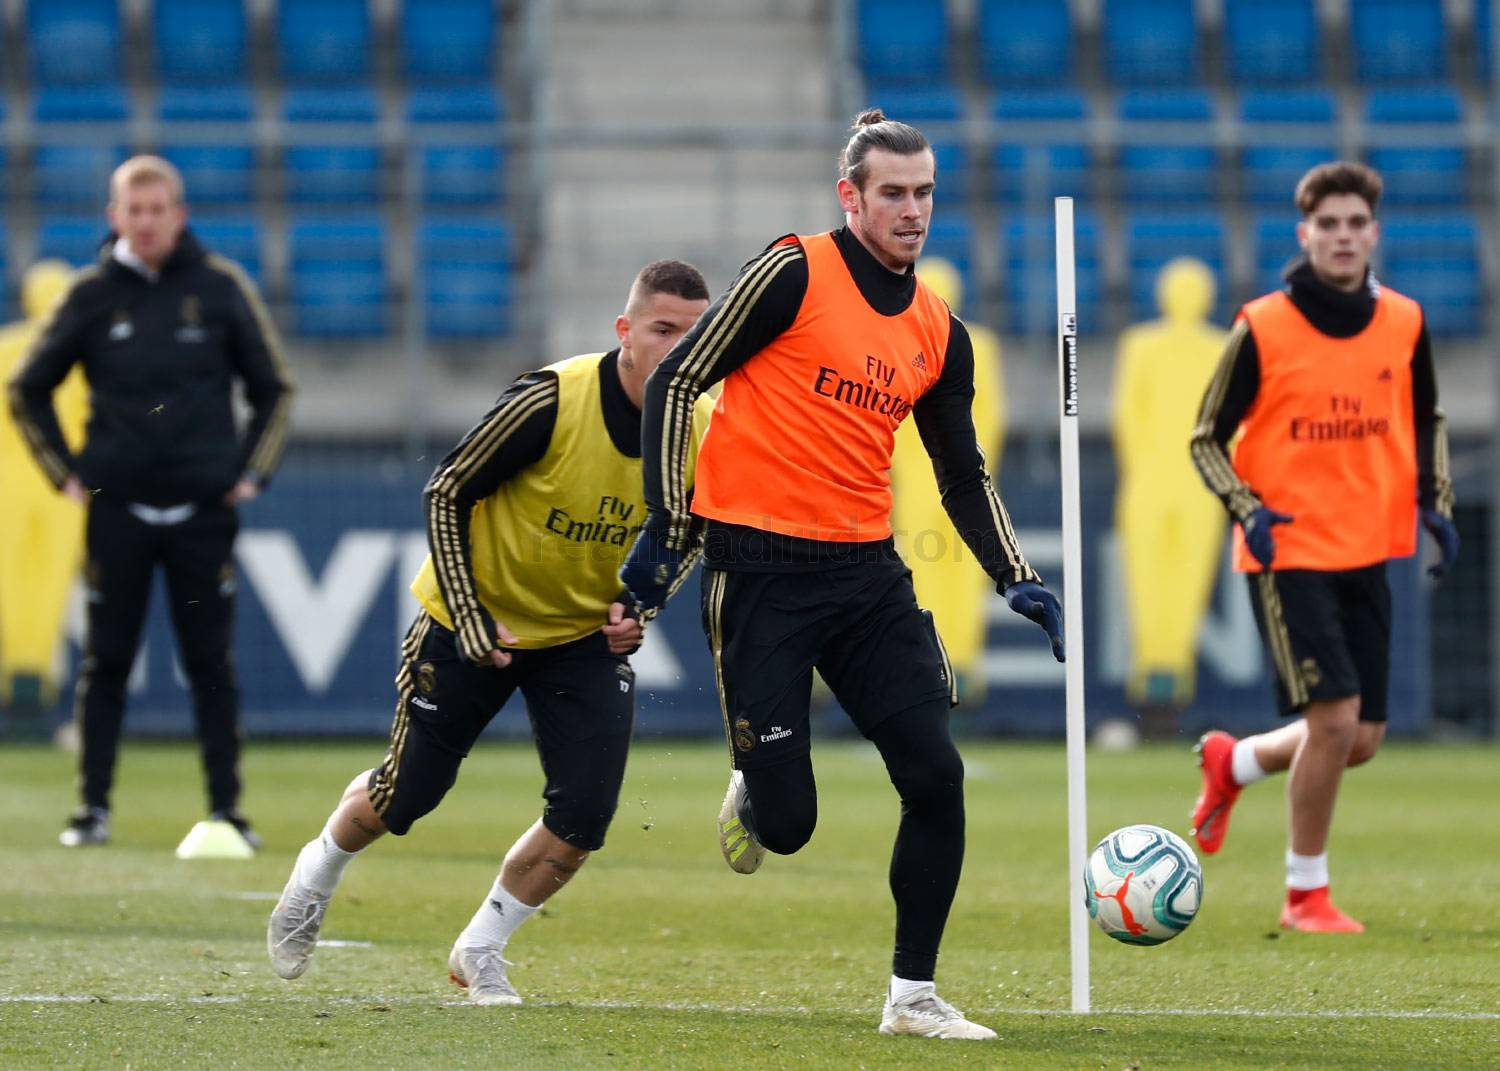 Real Madrid - Entrenamiento del Real Madrid  - 16-12-2019